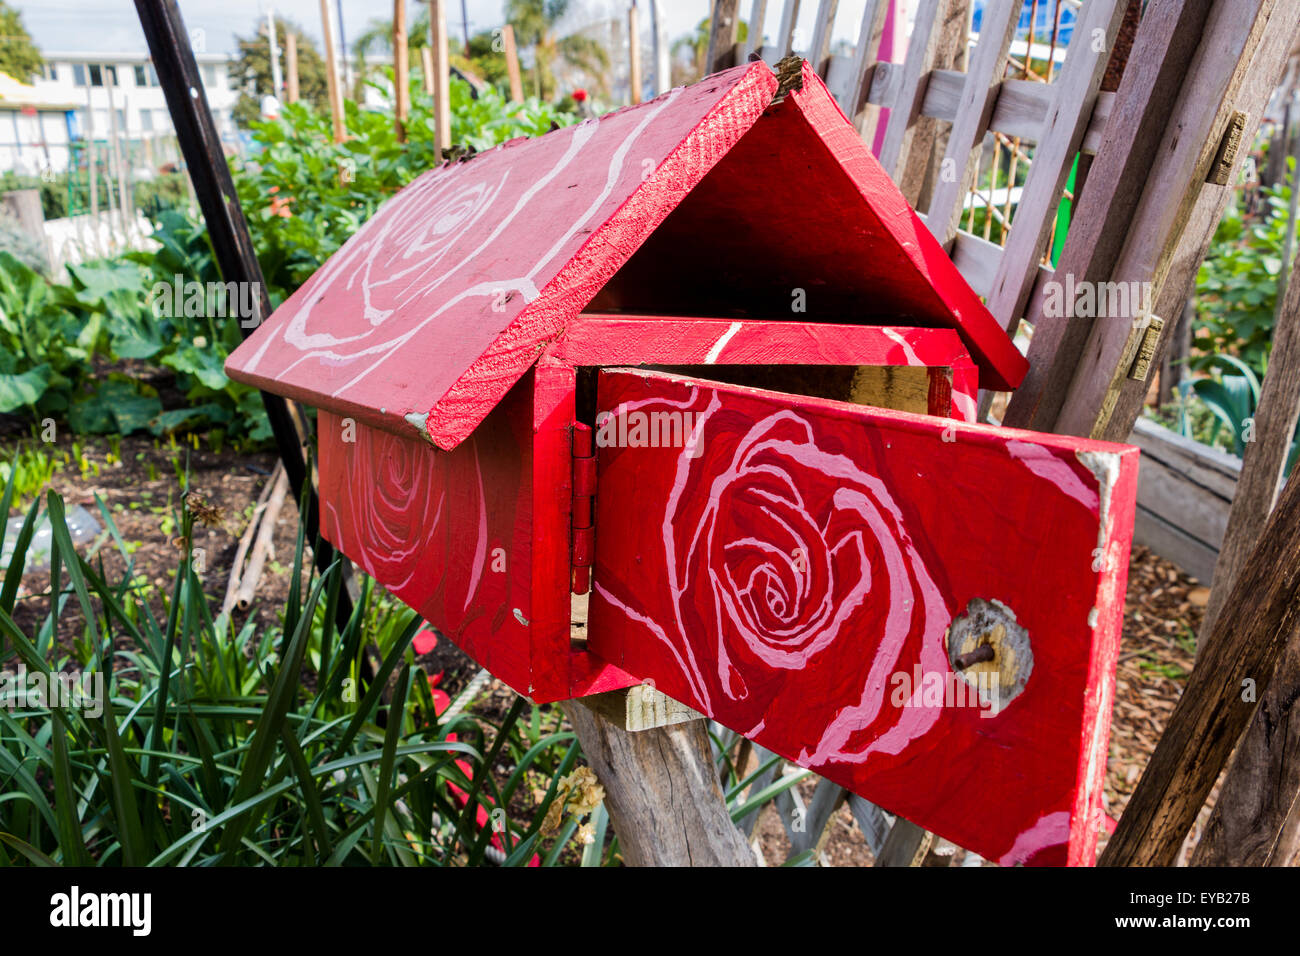 A red wooden letterbox with a white painted floral pattern on its a red wooden letterbox with a white painted floral pattern on its roof and door found in a community garden spiritdancerdesigns Image collections